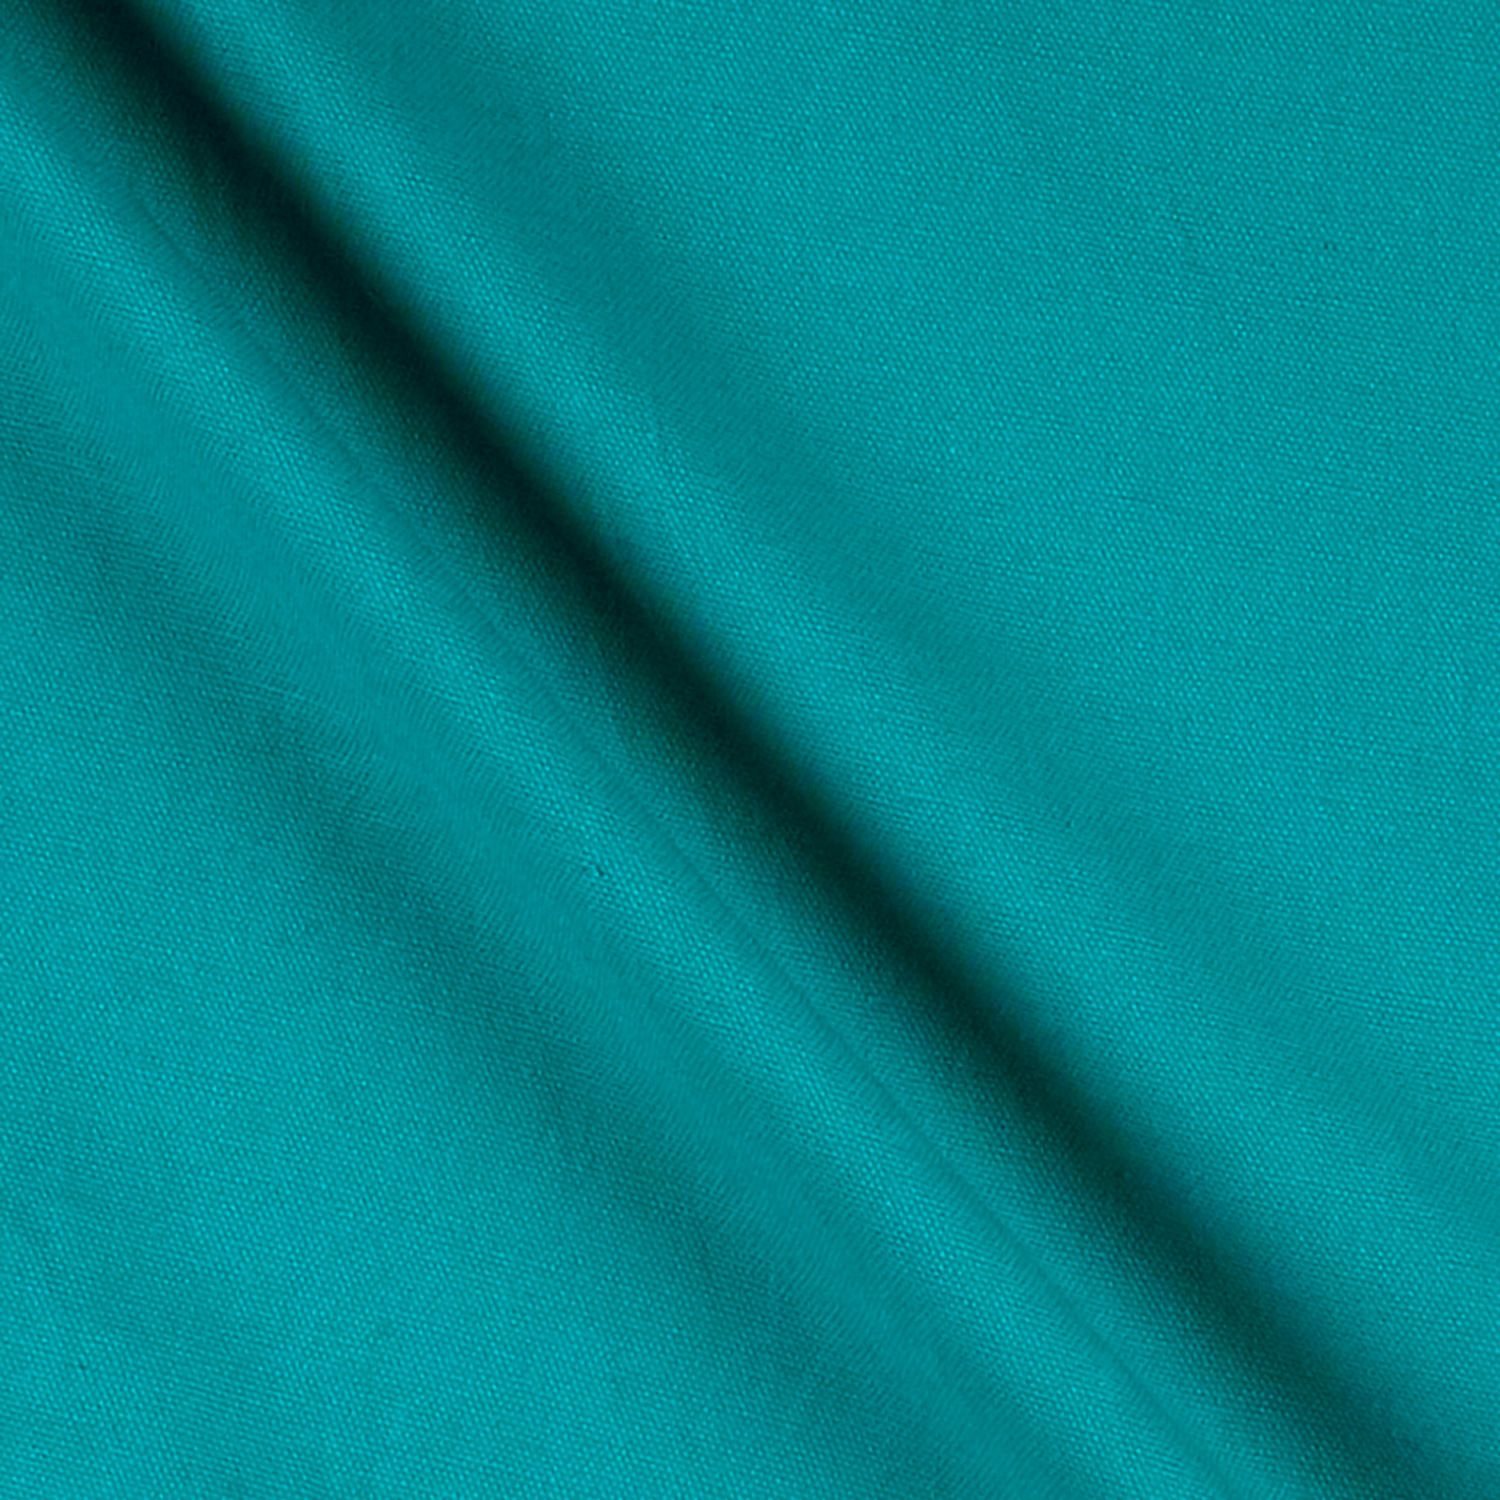 7 oz. Duck Teal Fabric by James Thompson in USA